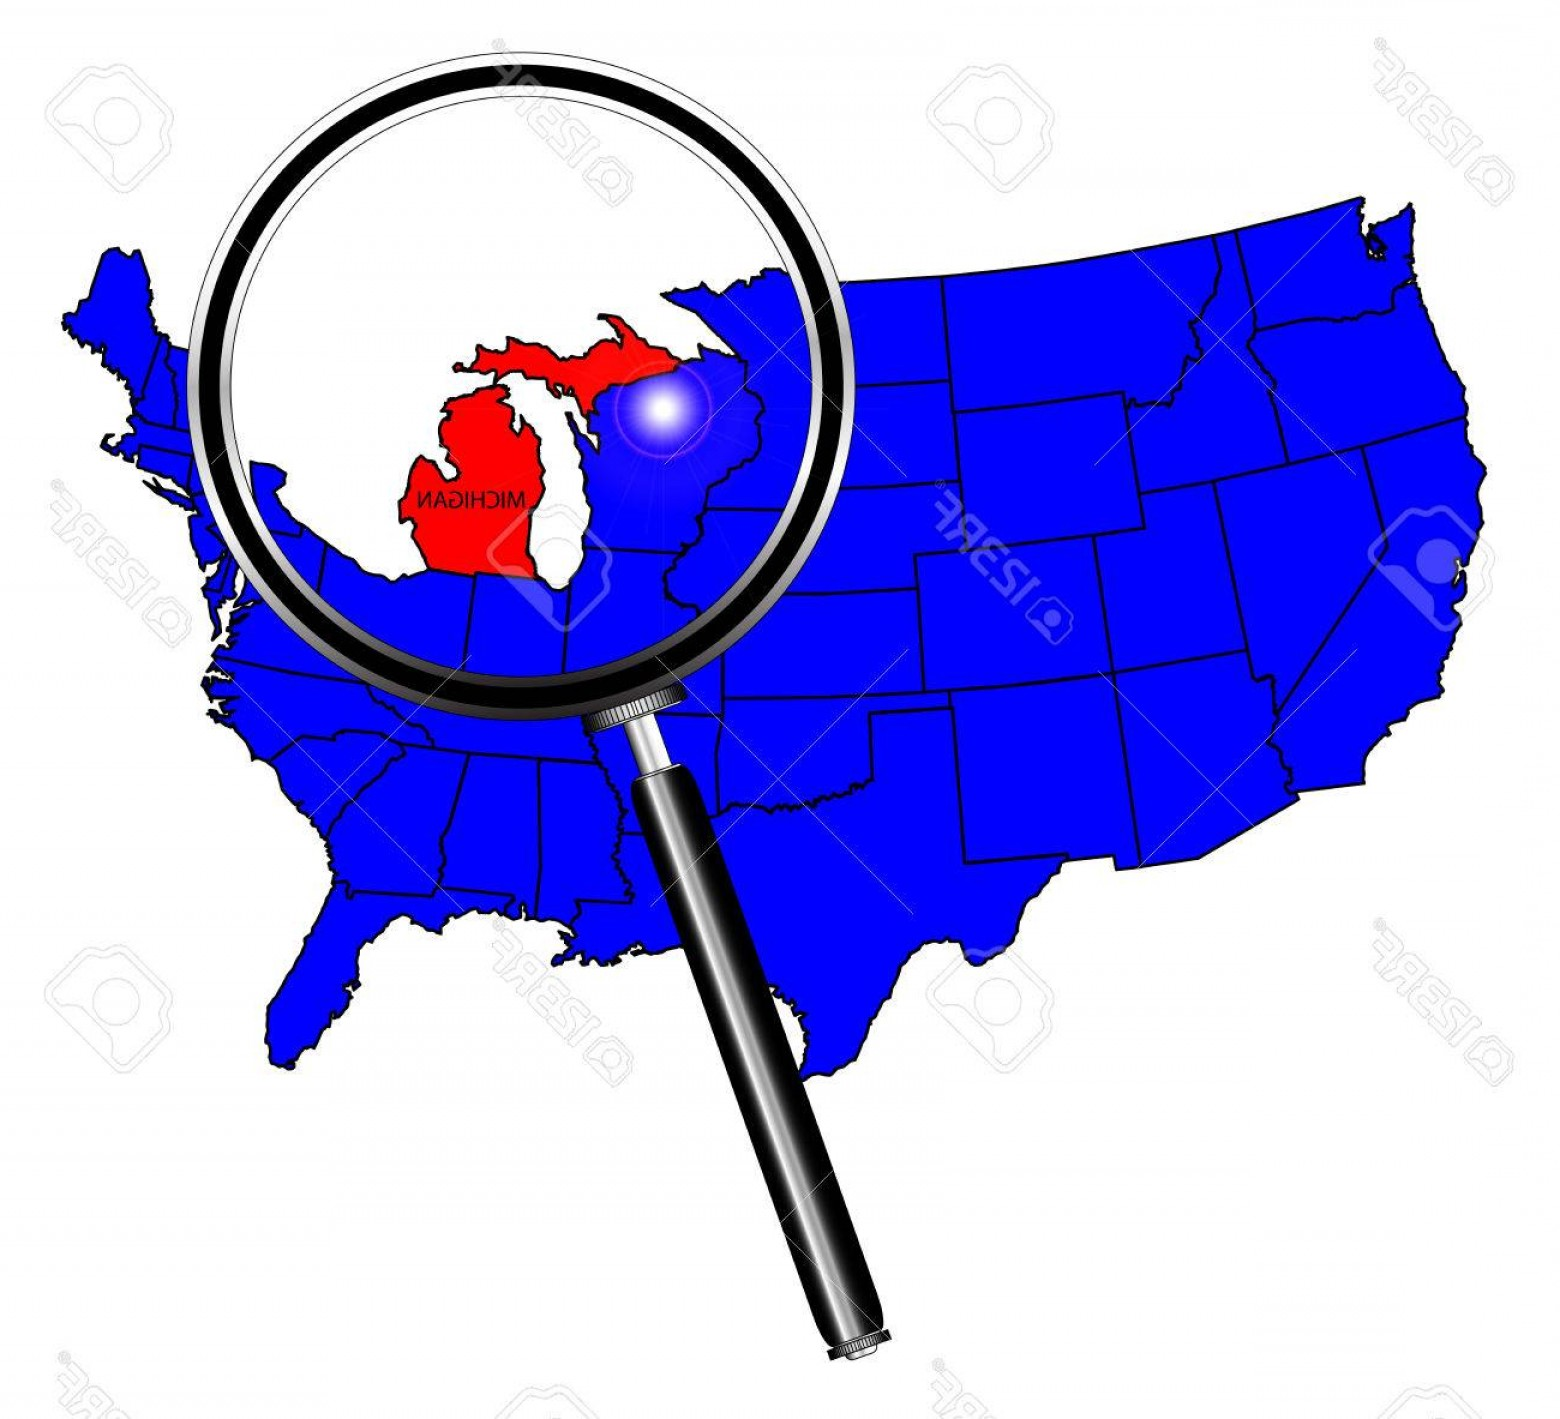 Michigan Vector Artwork: Photostock Vector Michigan State Outline Set Into A Map Of The United States Of America Below A Magnifying Glass